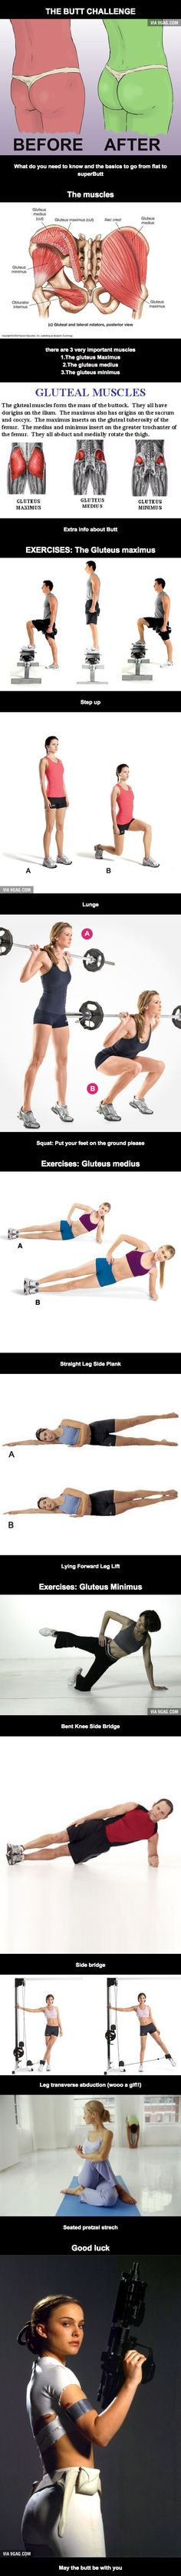 Glute Exercises (pix)